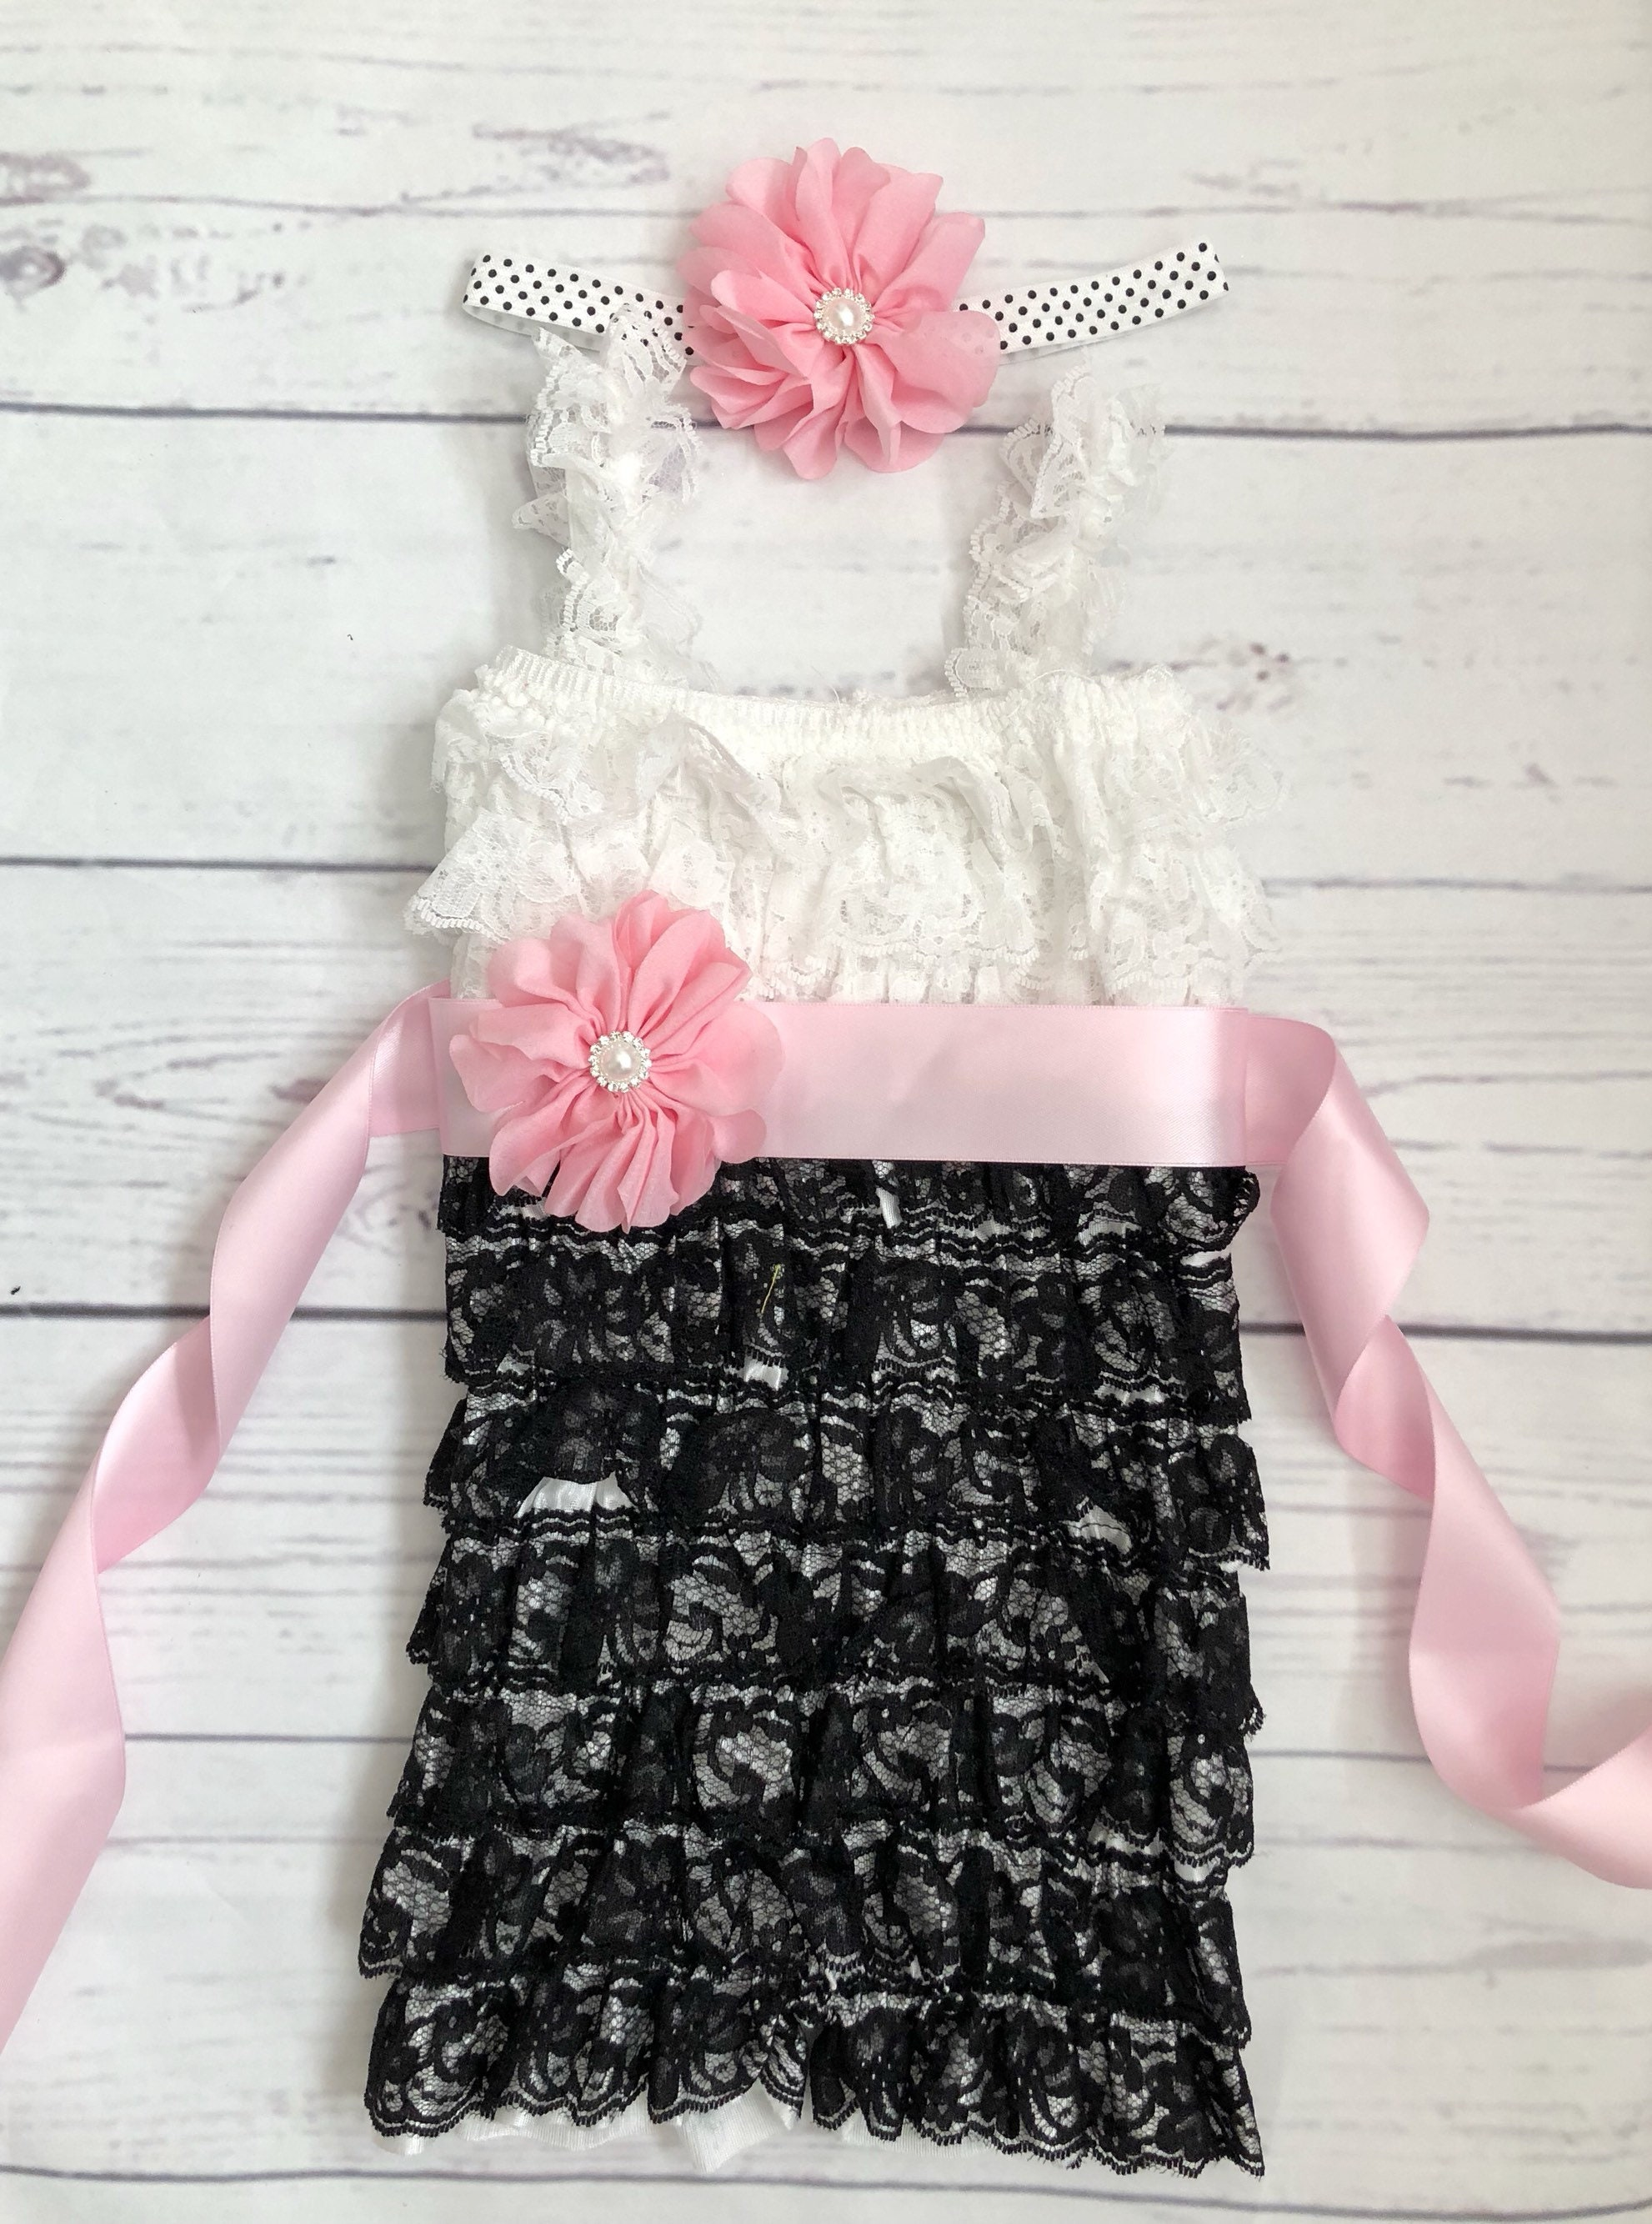 1e38aa1db Baby girl clothes-baby girl lace romper-minnie mouse 1st birthday outfit- black lace romper-cake smash outfit-pink black baby outfit